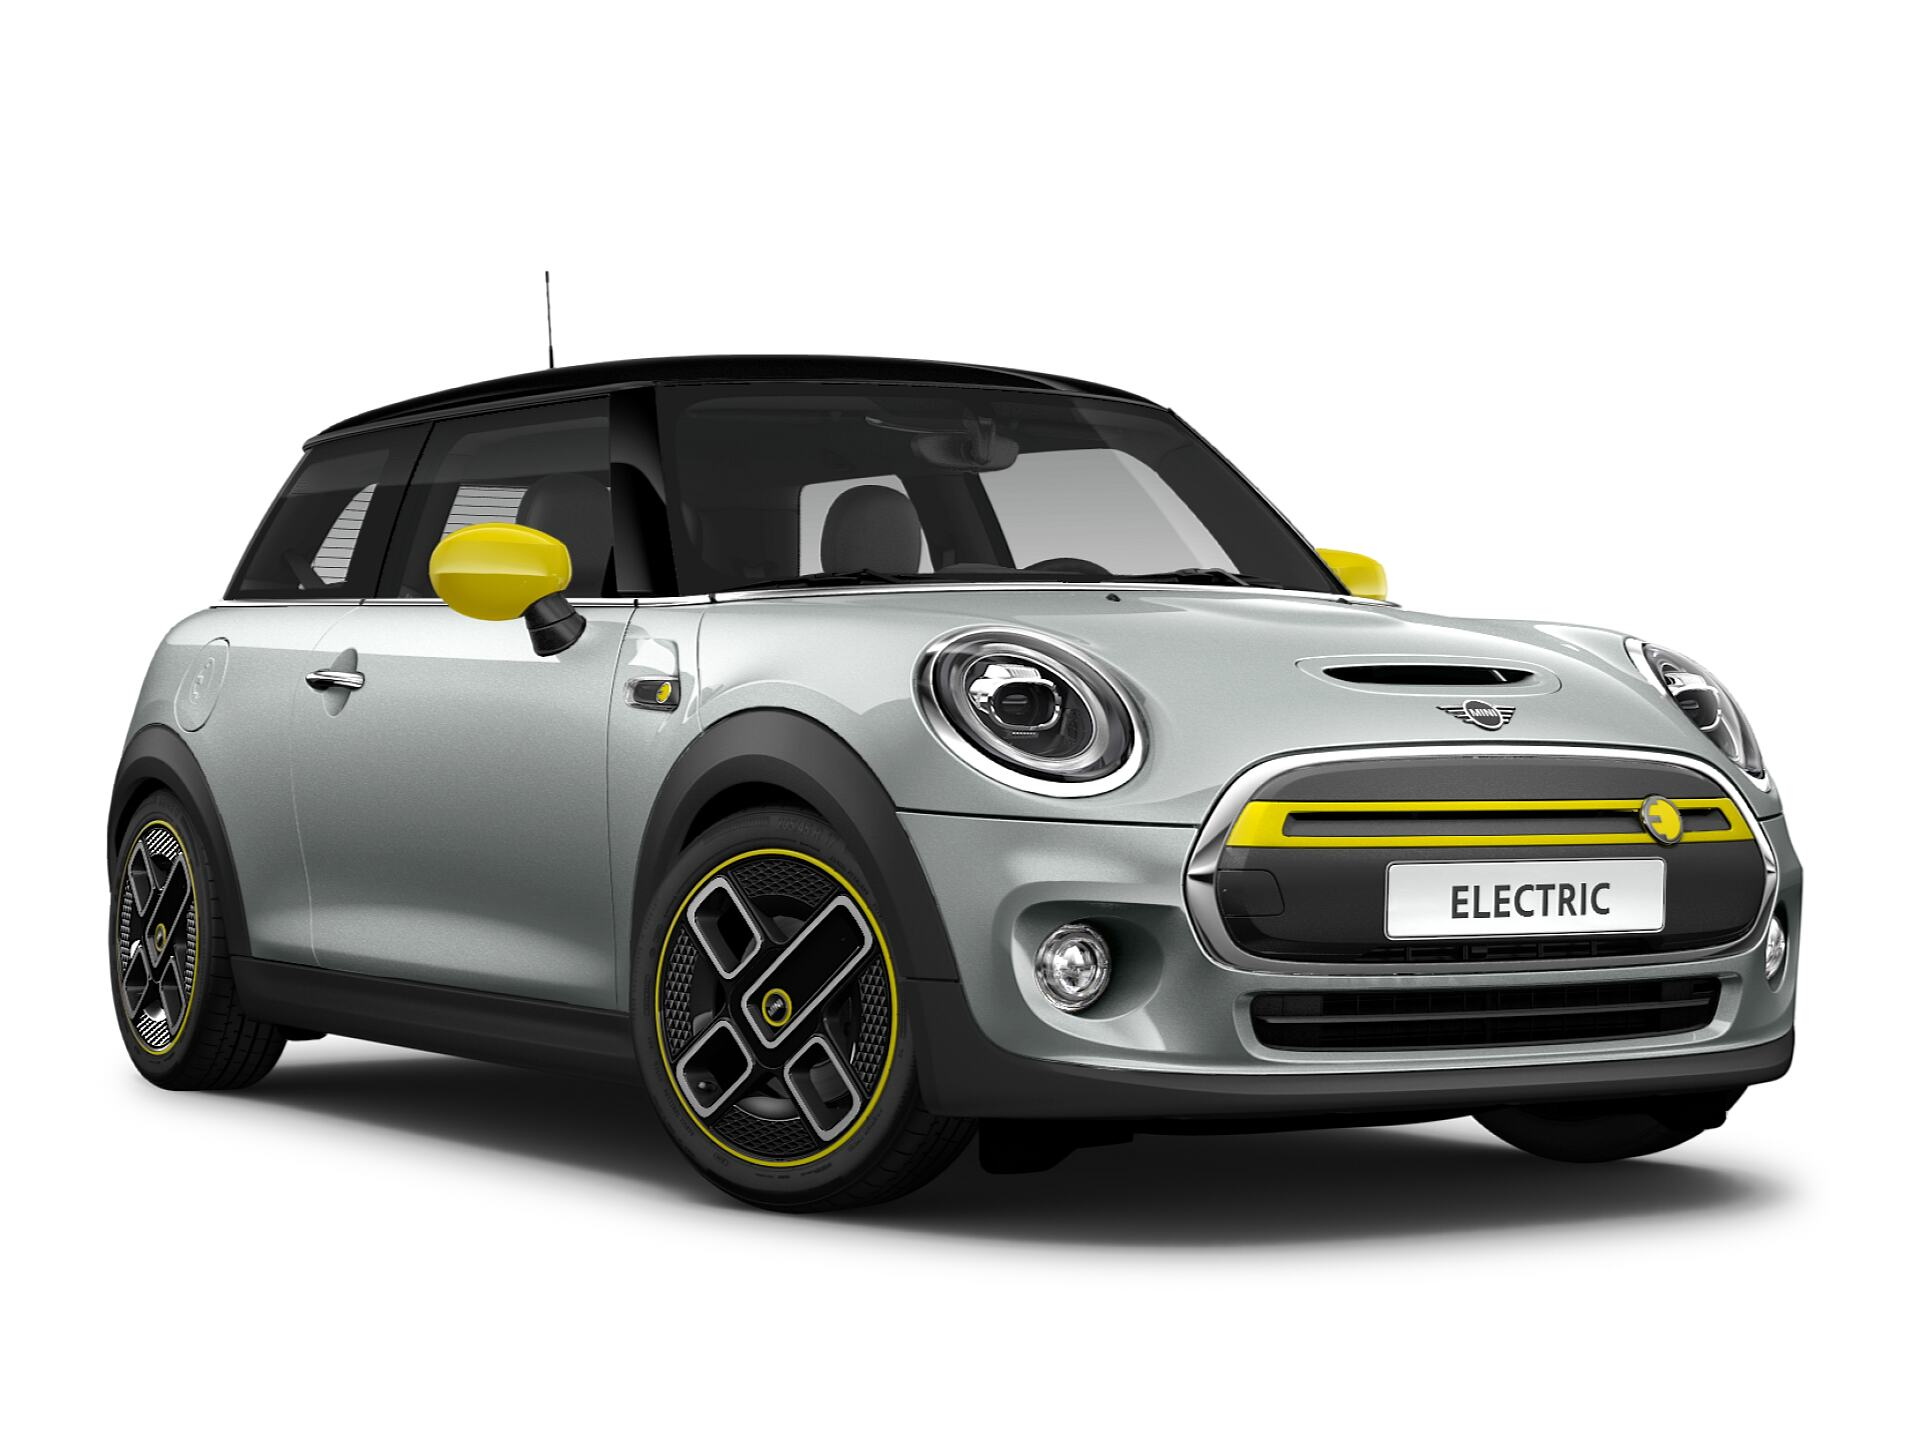 Mini electric – white and black – front view